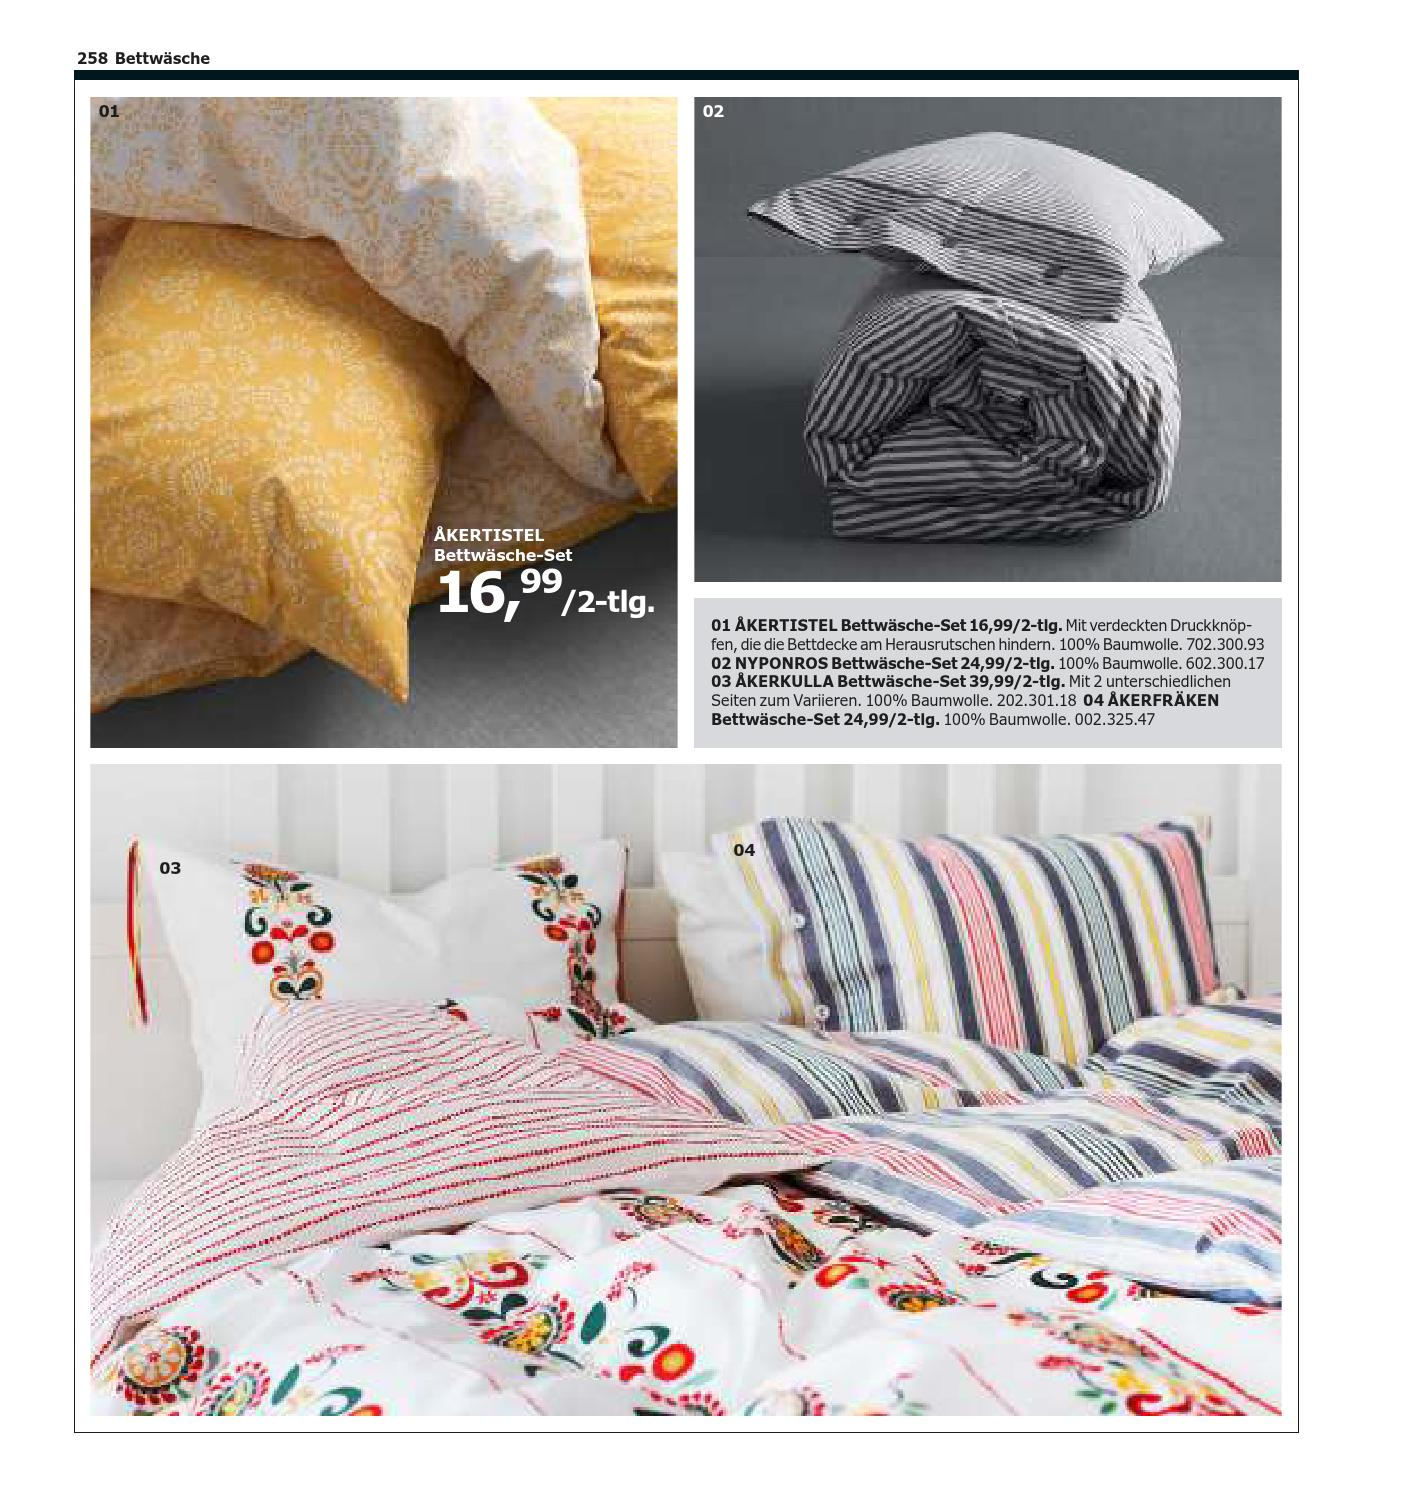 Ikea Katalog 2014 By Snizenja Hr Issuu